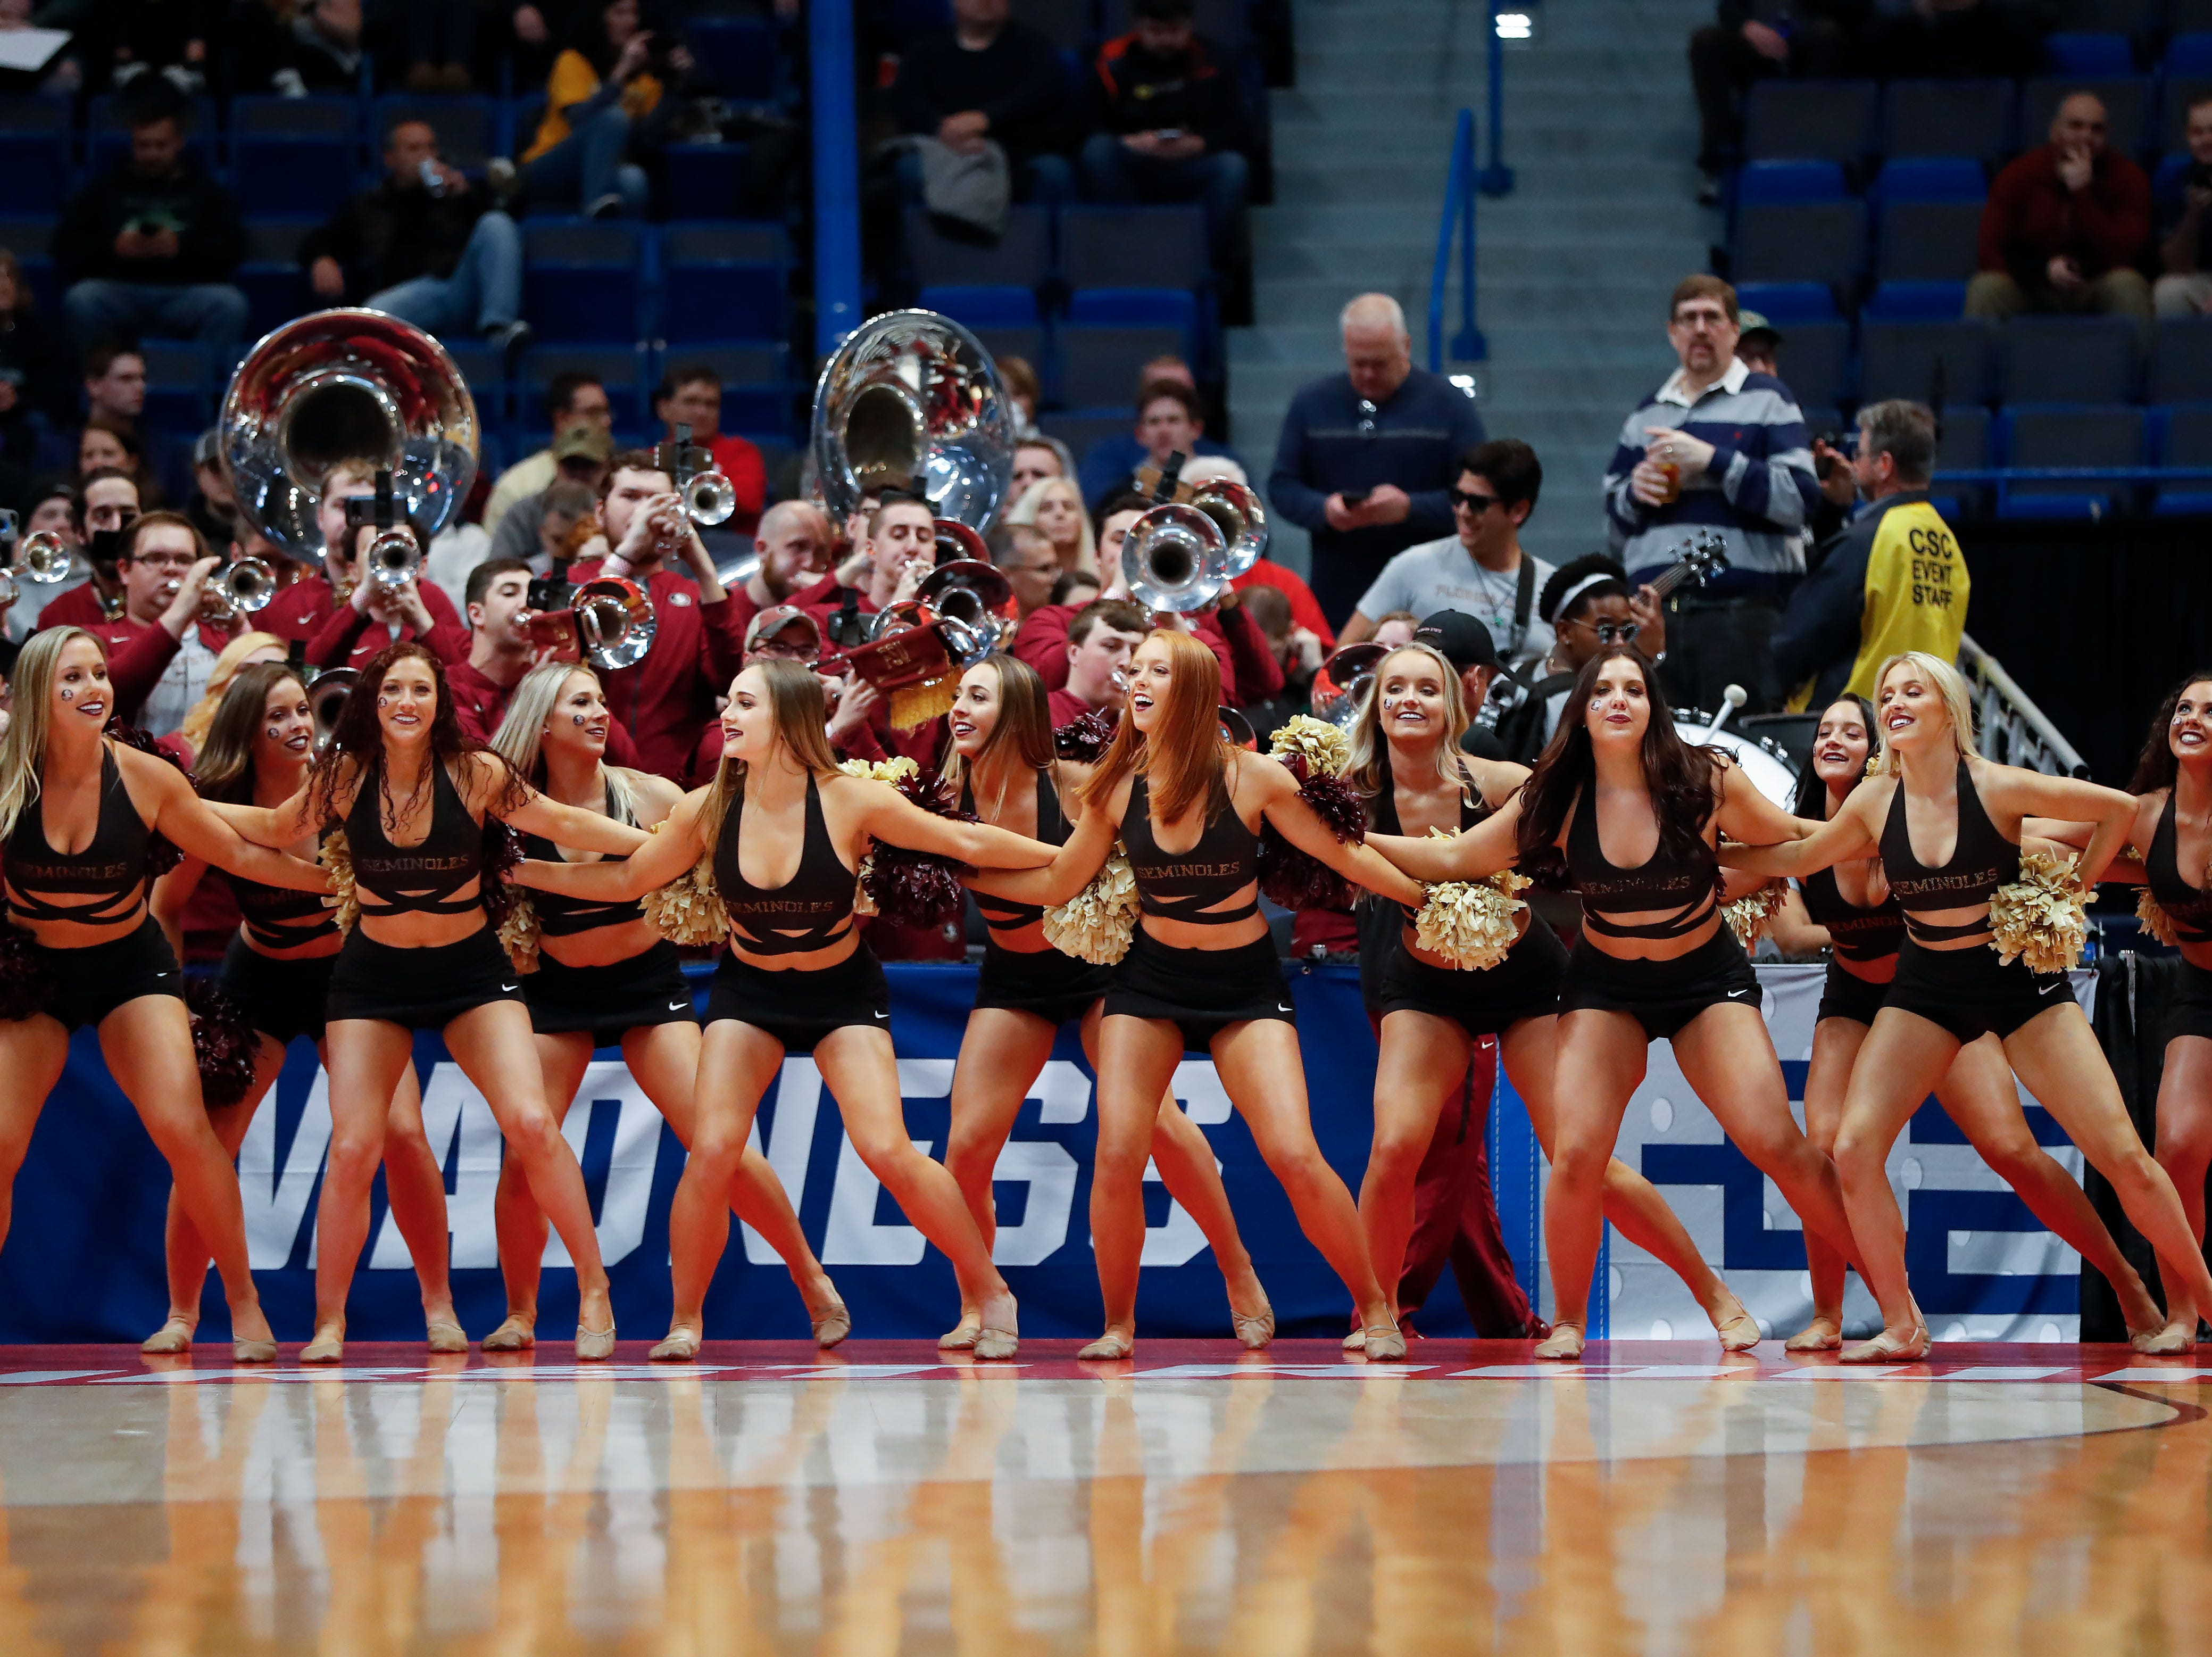 Mar 21, 2019; Hartford, CT, USA; The Florida State Seminoles cheerleaders perform during a game against the Vermont Catamounts in the first round of the 2019 NCAA Tournament at XL Center. Mandatory Credit: David Butler II-USA TODAY Sports